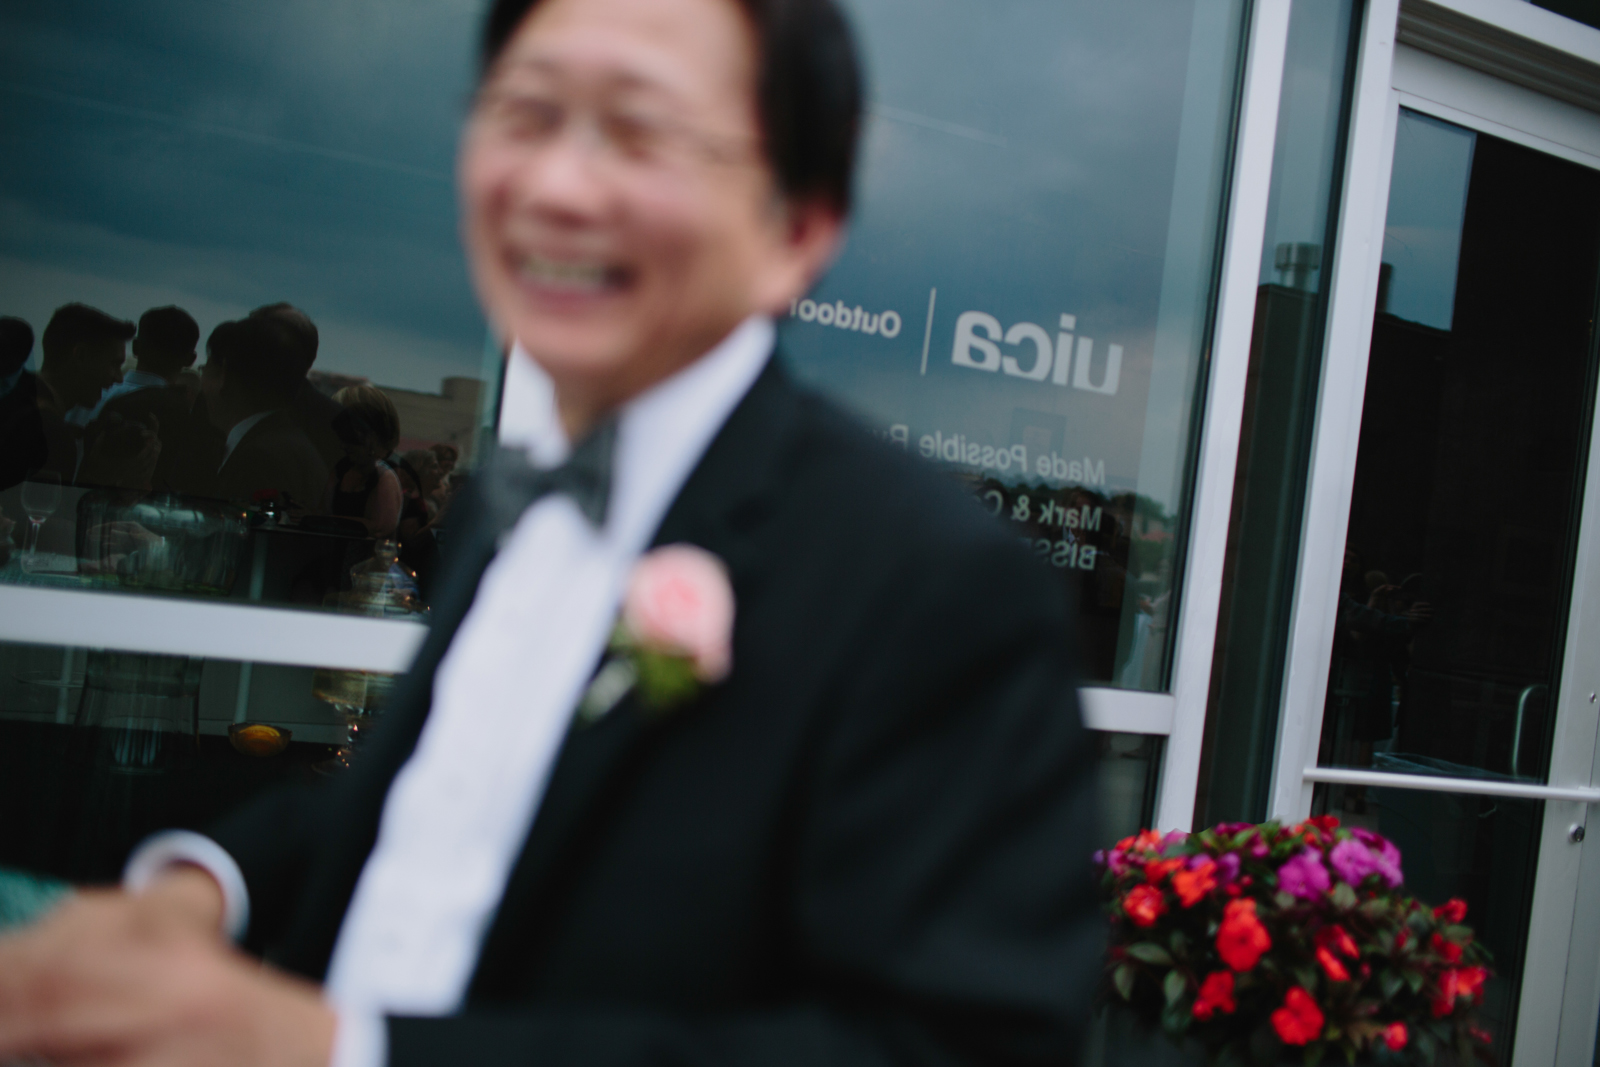 Fountain-Street-Church-and-Urban-Institute-of-Contemporary-Arts-Wedding-Kirstin-and-Khoi-018.jpg